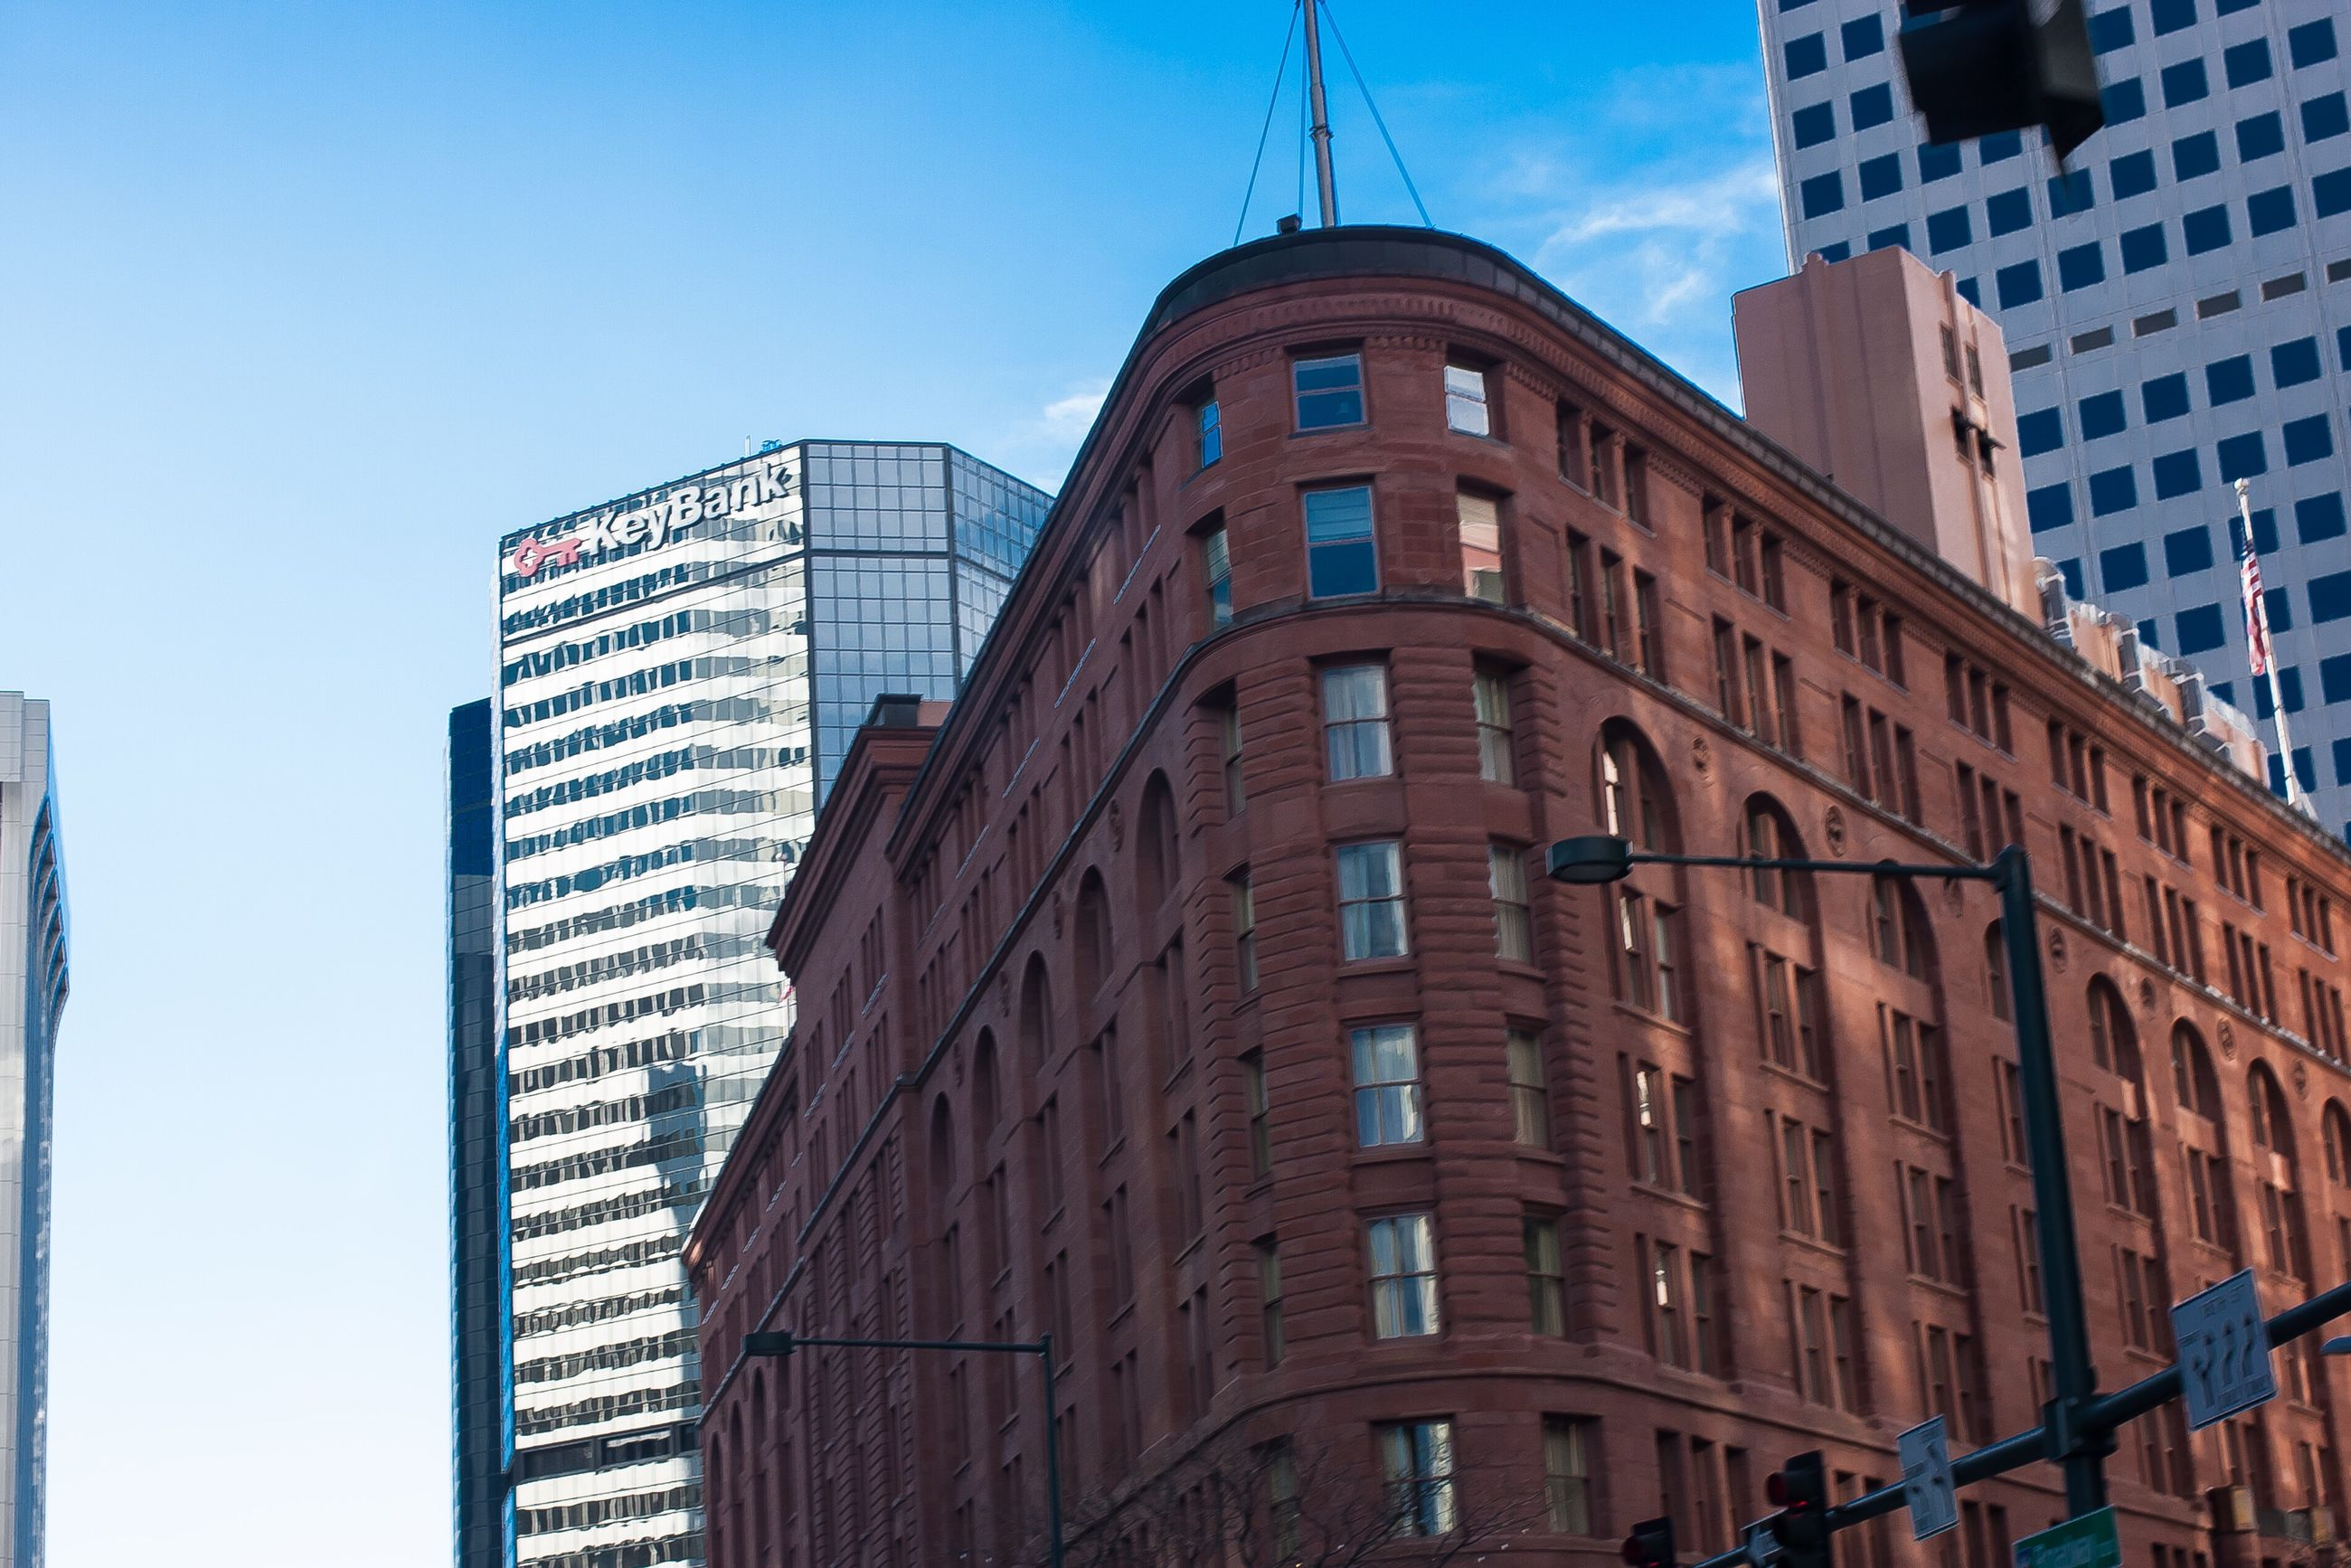 architecture, low angle view, building exterior, built structure, skyscraper, modern, city, no people, tower, outdoors, sky, day